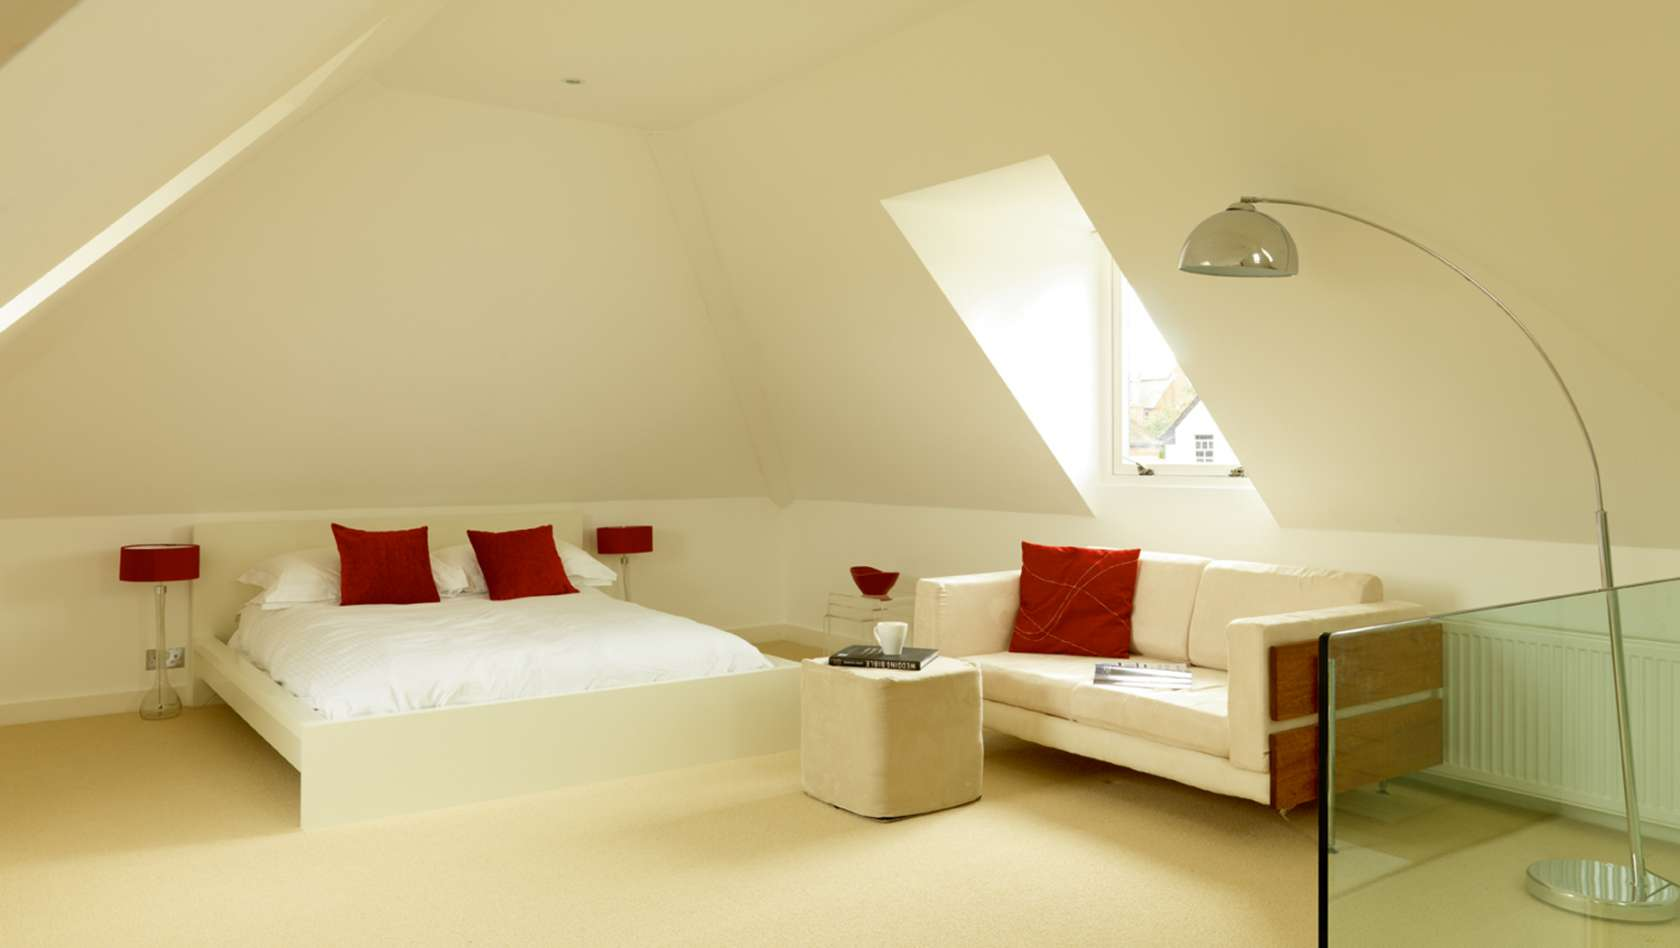 Small loft conversion ideas dog breeds picture - Loft conversion bedroom design ideas ...